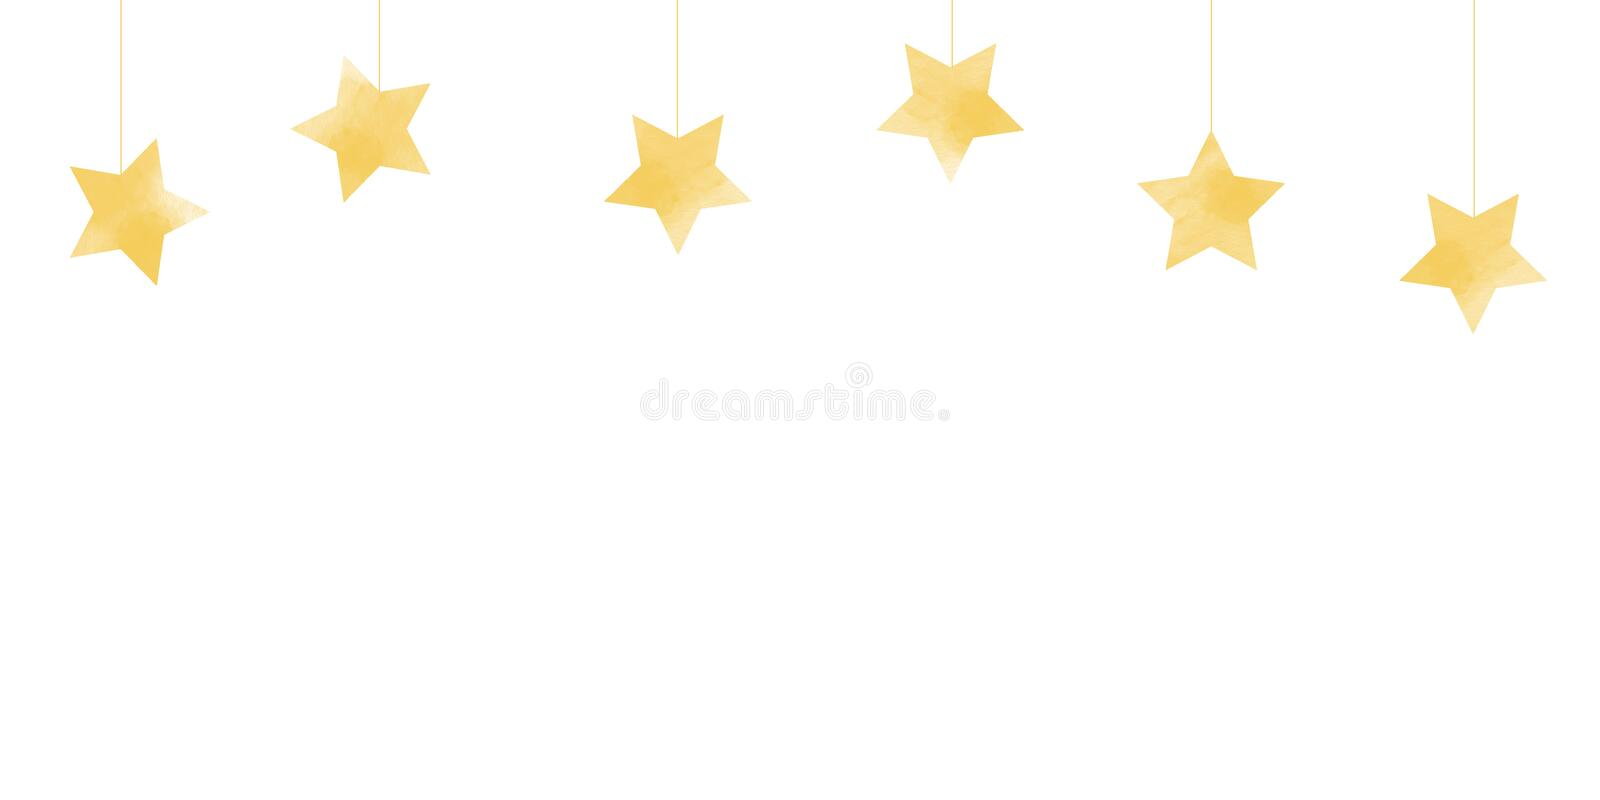 A simplistic illustration gold gradient stars on white bacDropping star or hanging stars on white background Christmas backgrounds. This illustration is yellow stock image